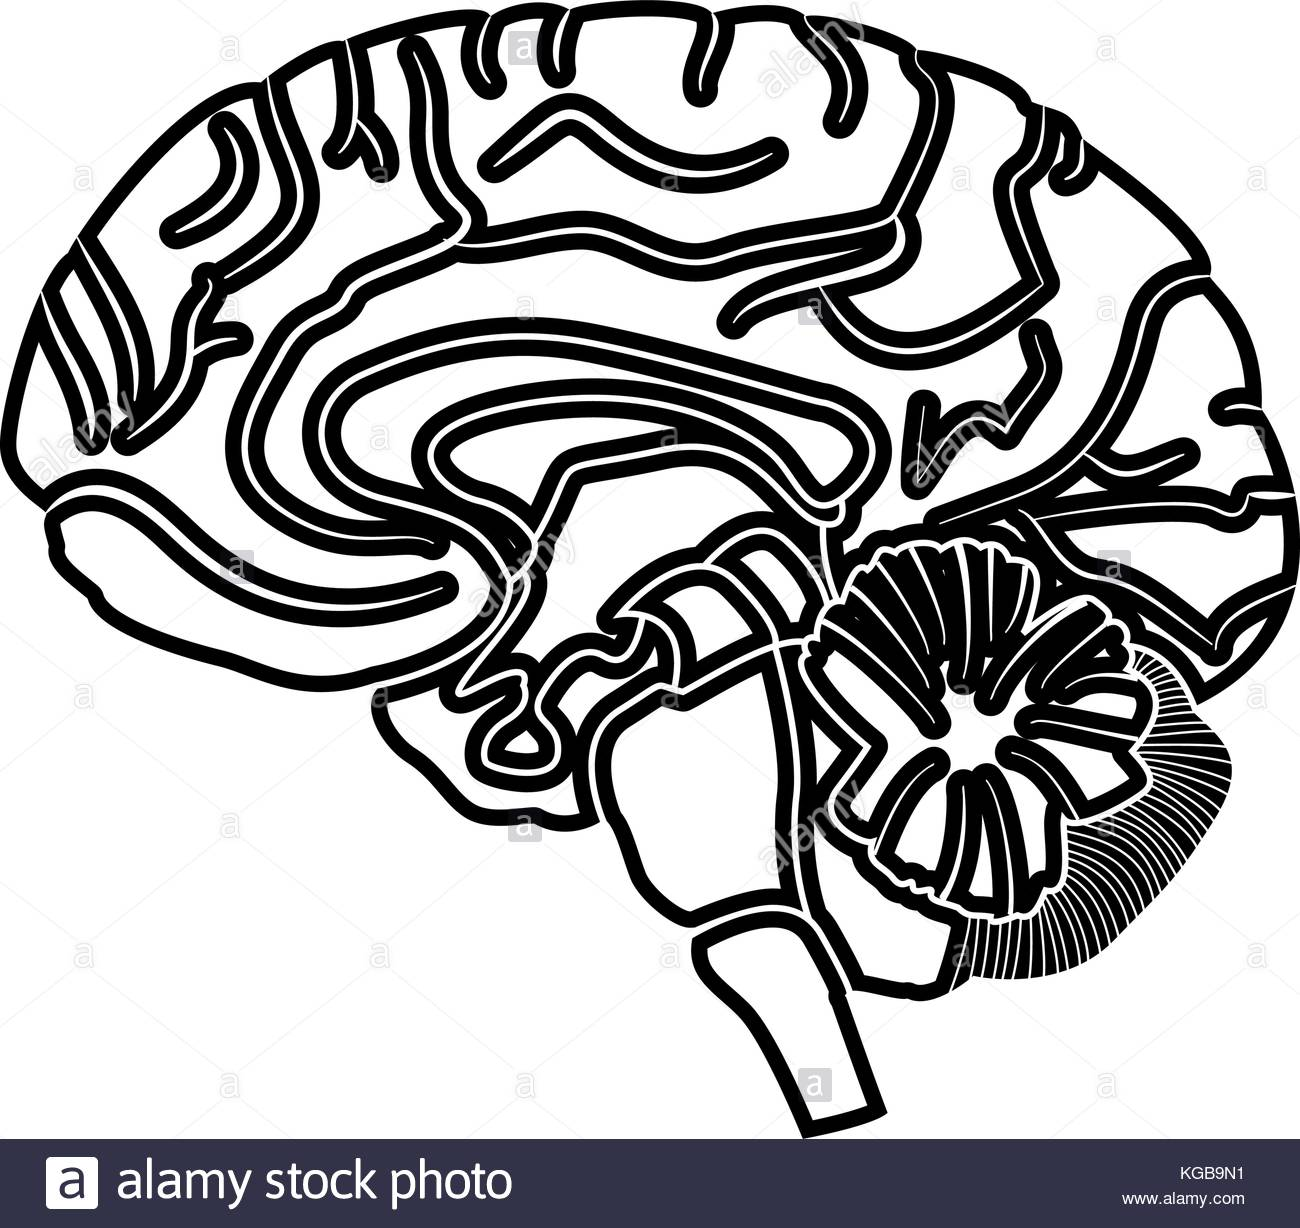 1300x1228 Mental Health Smart Brain Black And White Stock Photos Amp Images